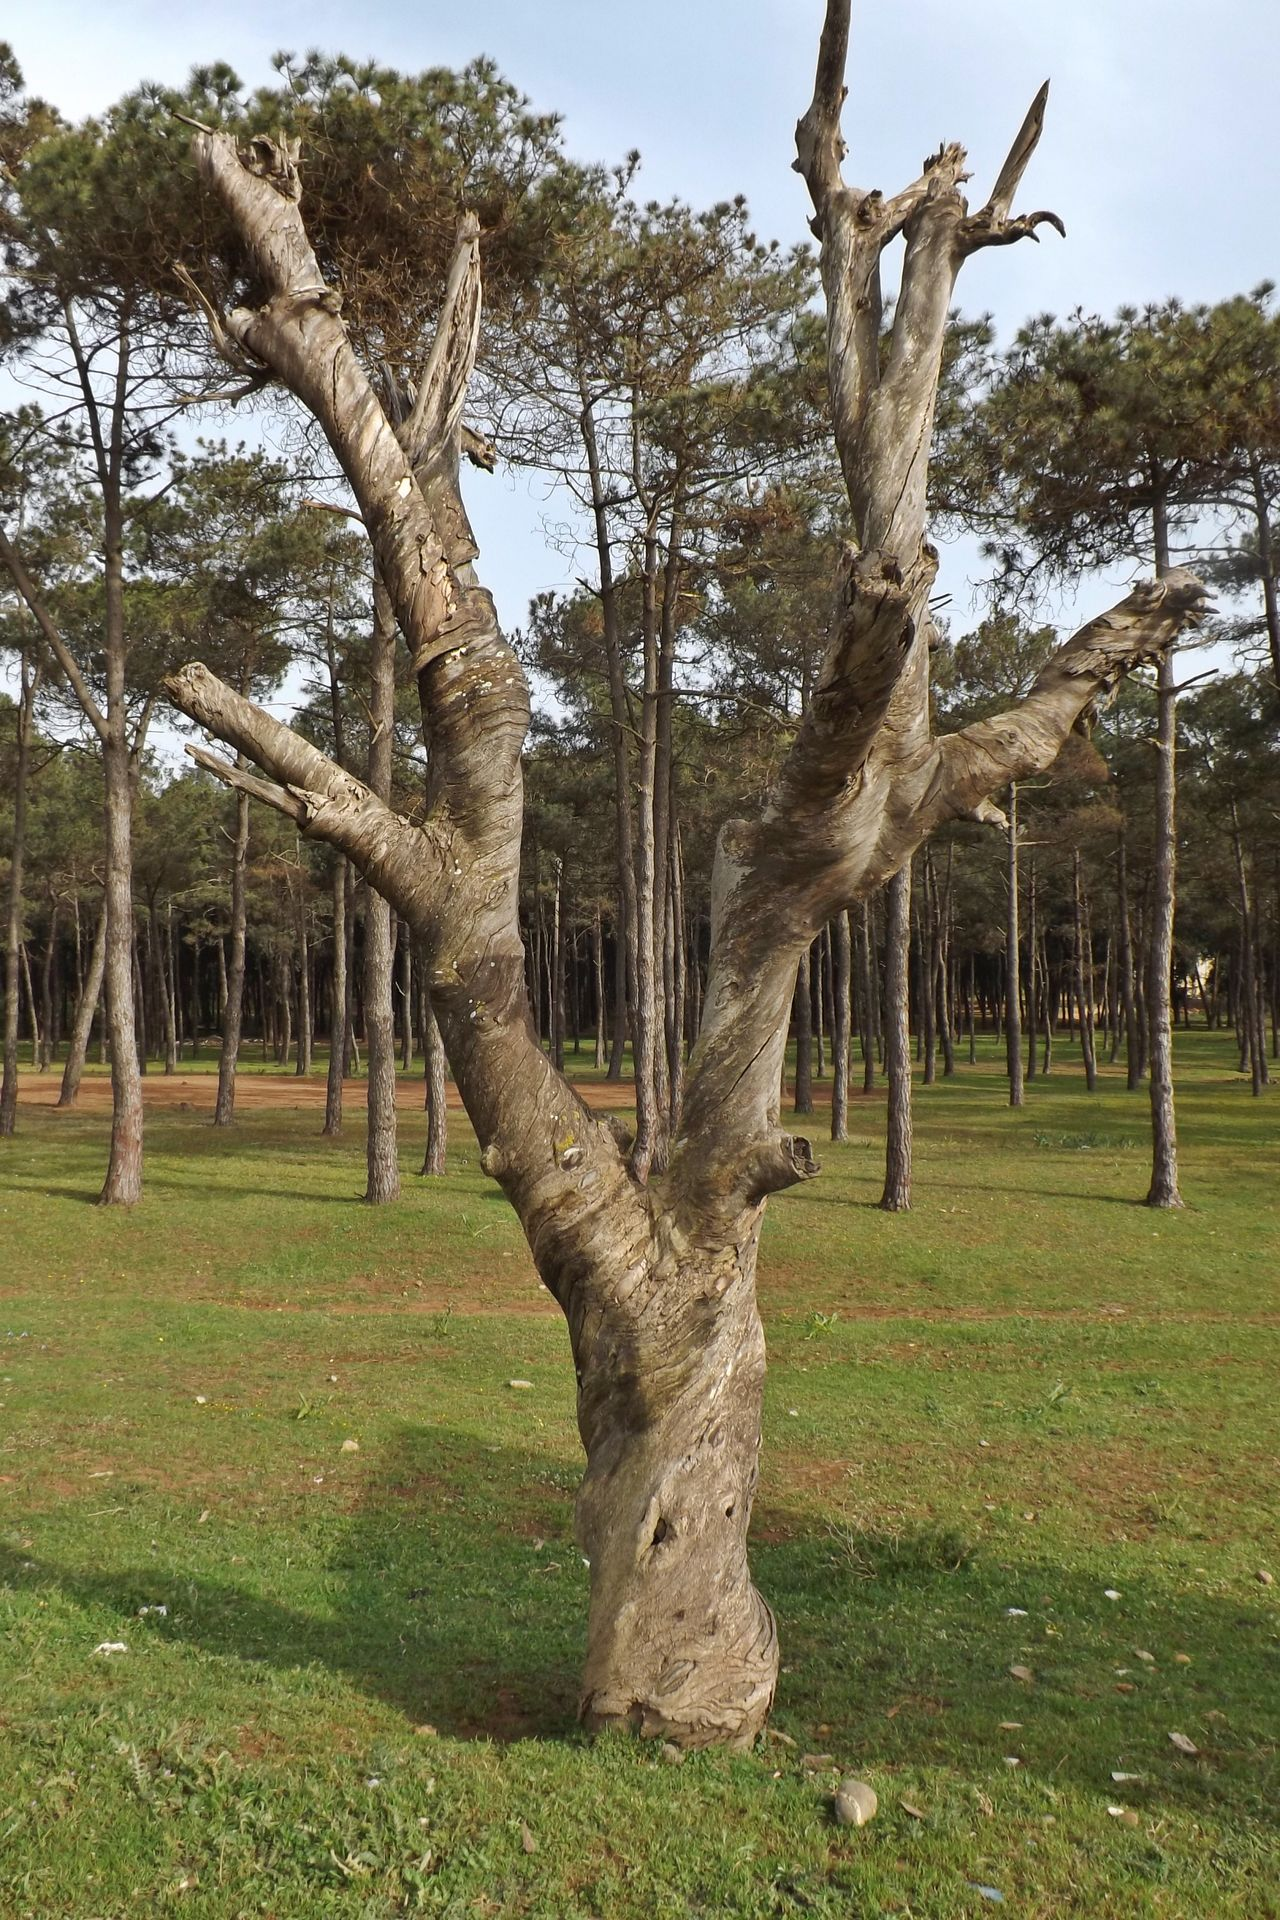 Arbre Morte Arbres Beauty In Nature Day Foret Grass Herbre Landscape Nature No People Ombre Outdoors Paysage Sky Terre Tree Tree Trunk